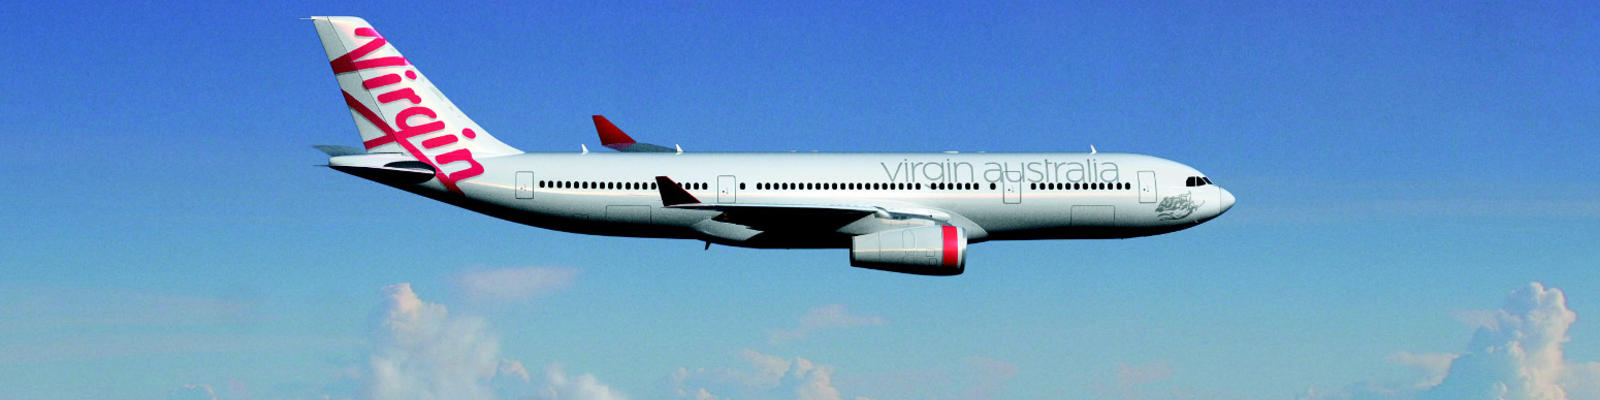 A Virgin Australia airplane flying through the blue sky with fluffy clouds in the background